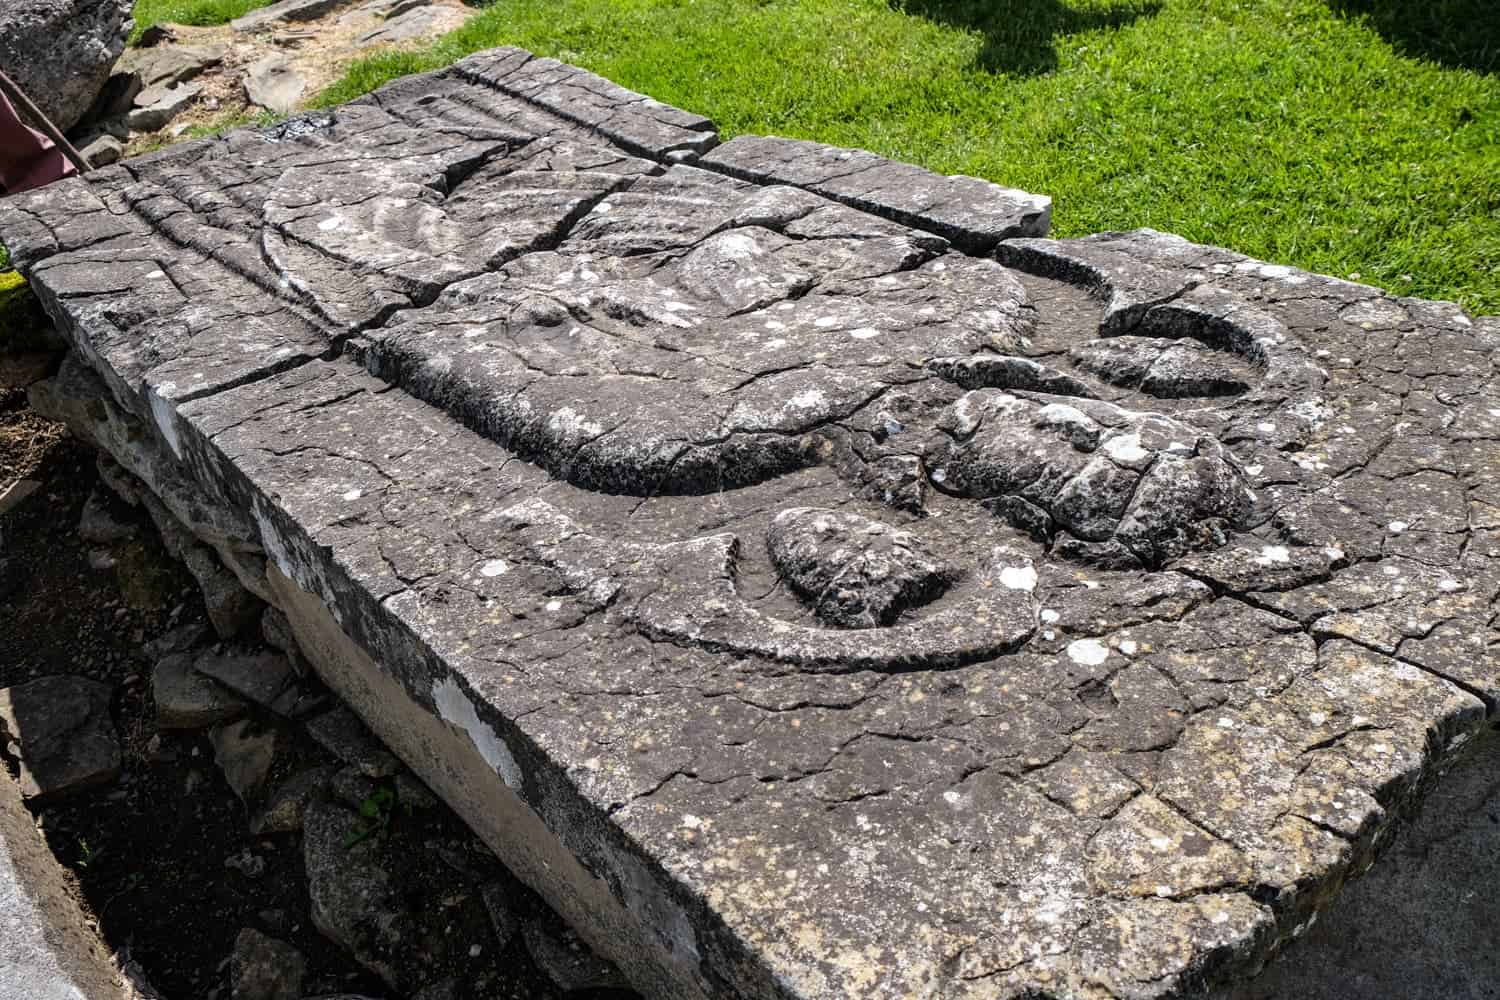 Tomb of St. Nicholas, Jerpoint Park, Lost City, Ireland's Ancient East